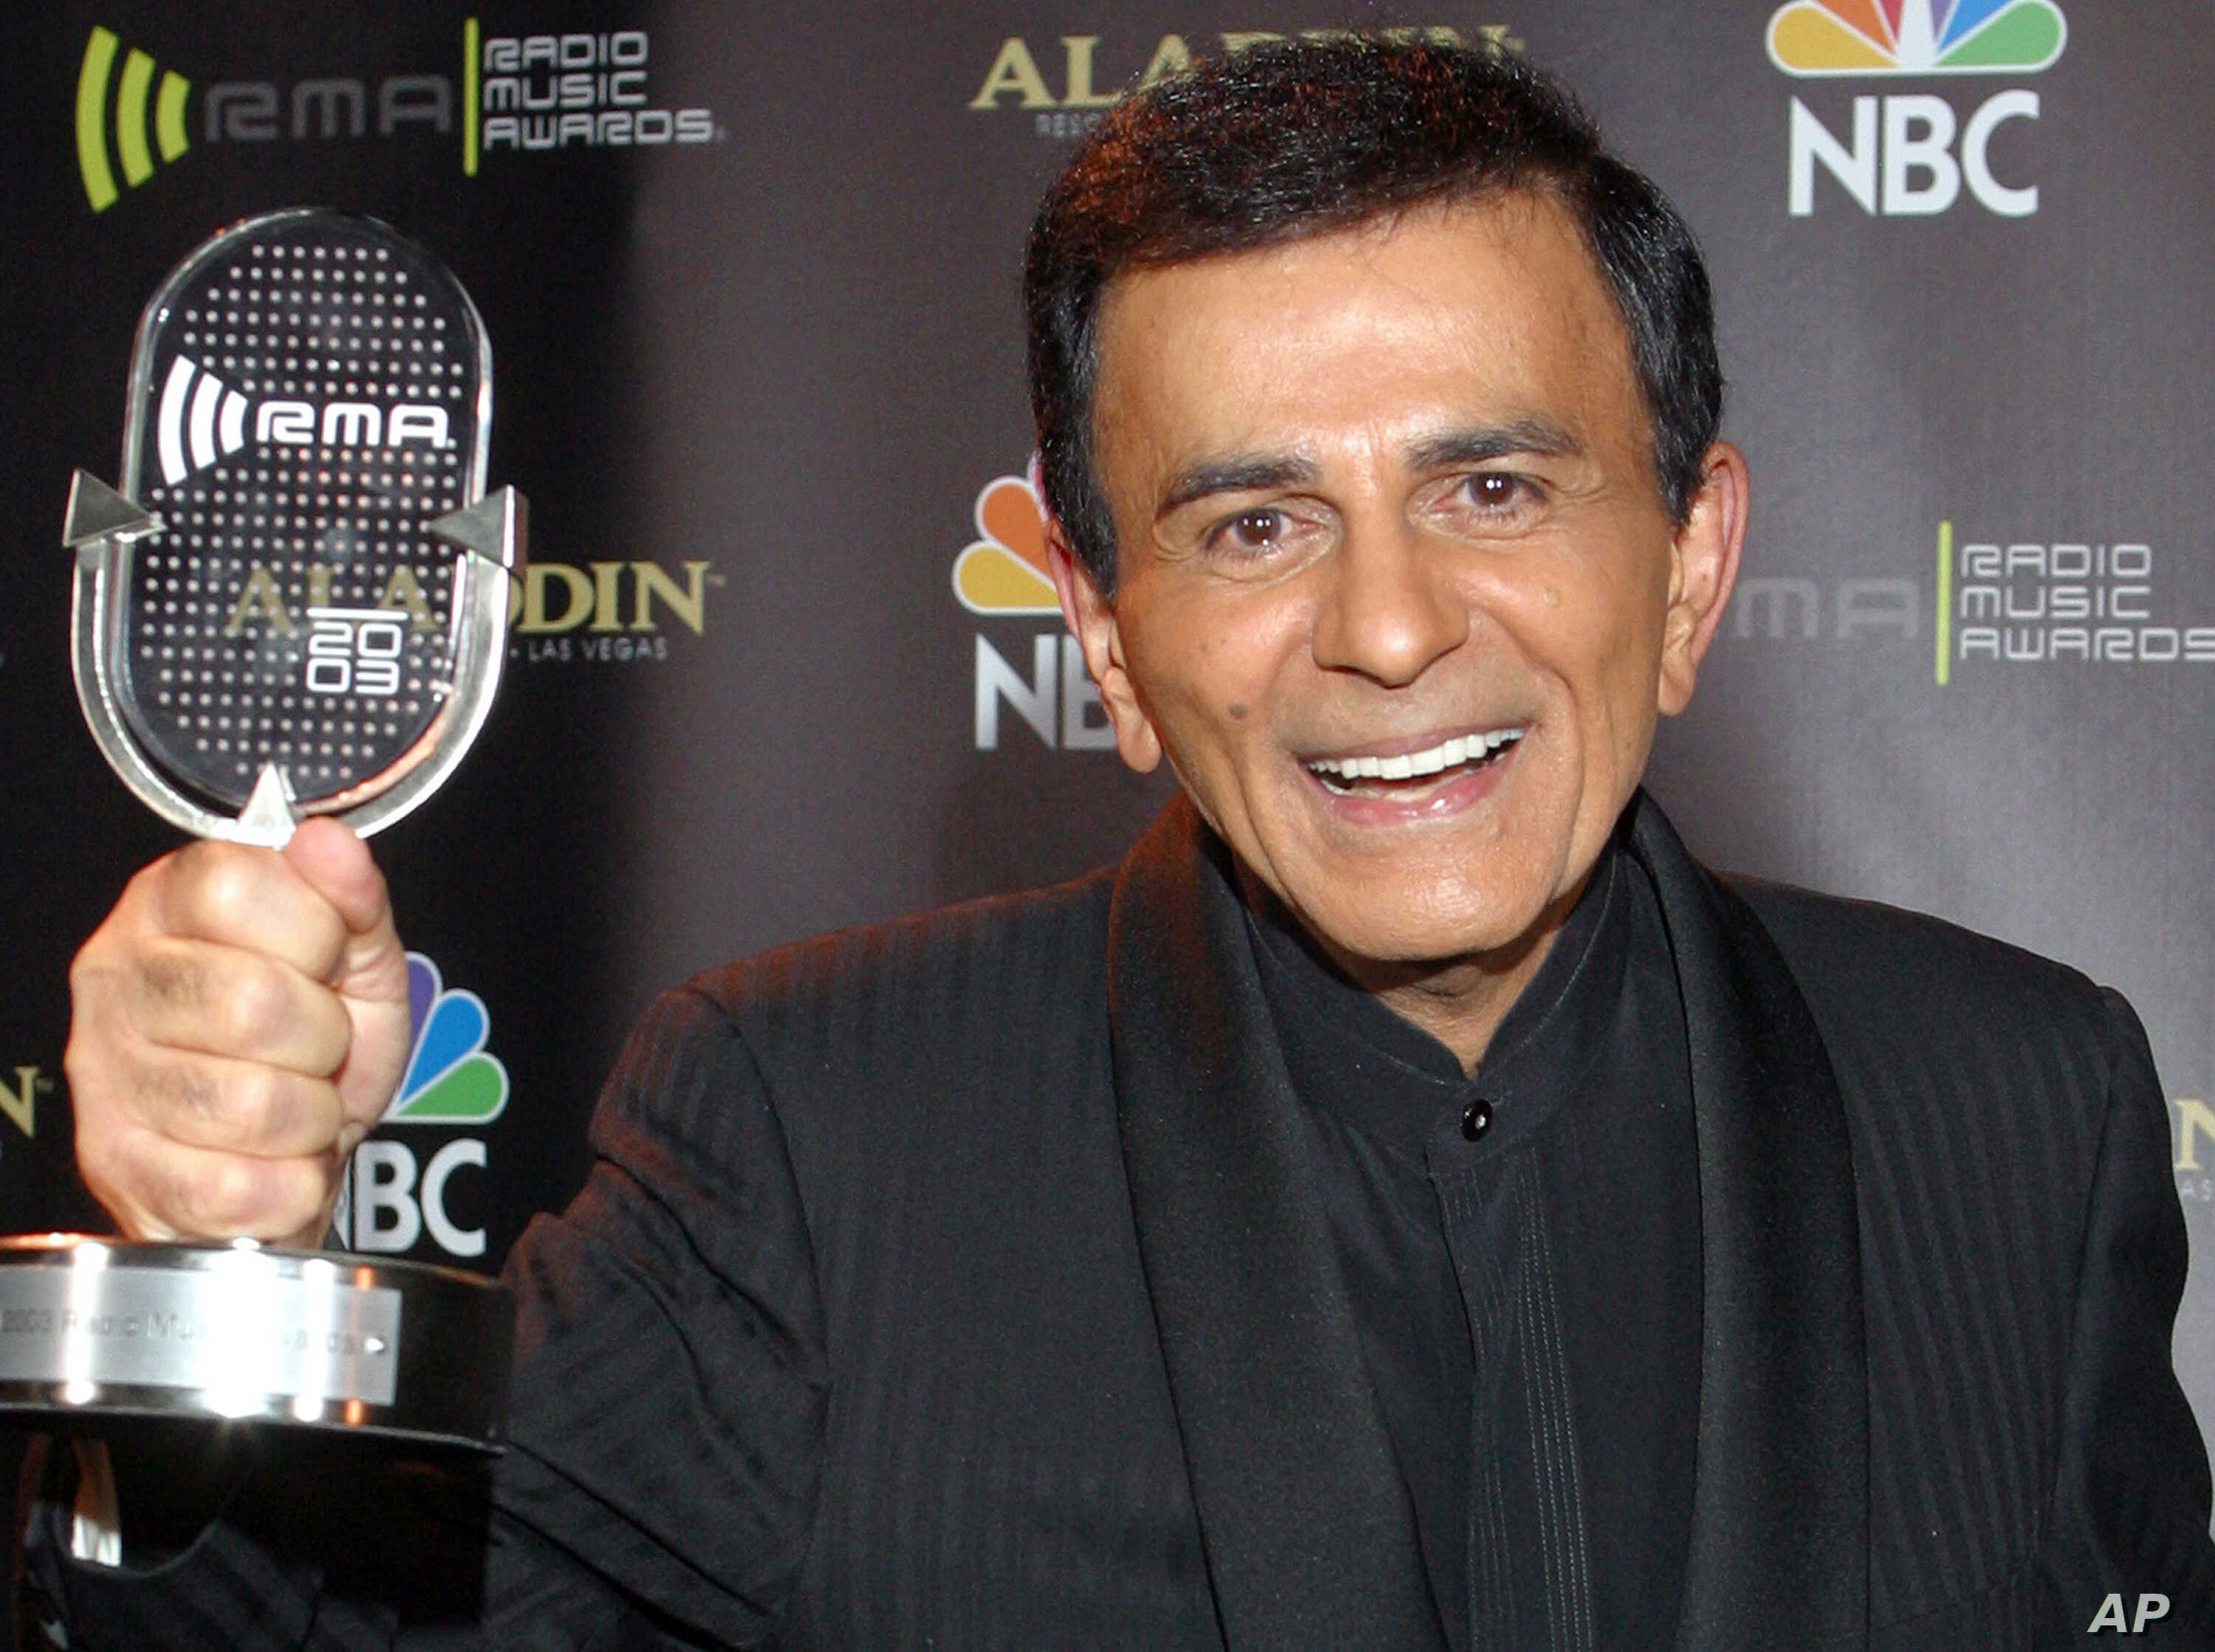 Casey Kasem, 'American Top 40' Host, Dies at Age 82 | Voice